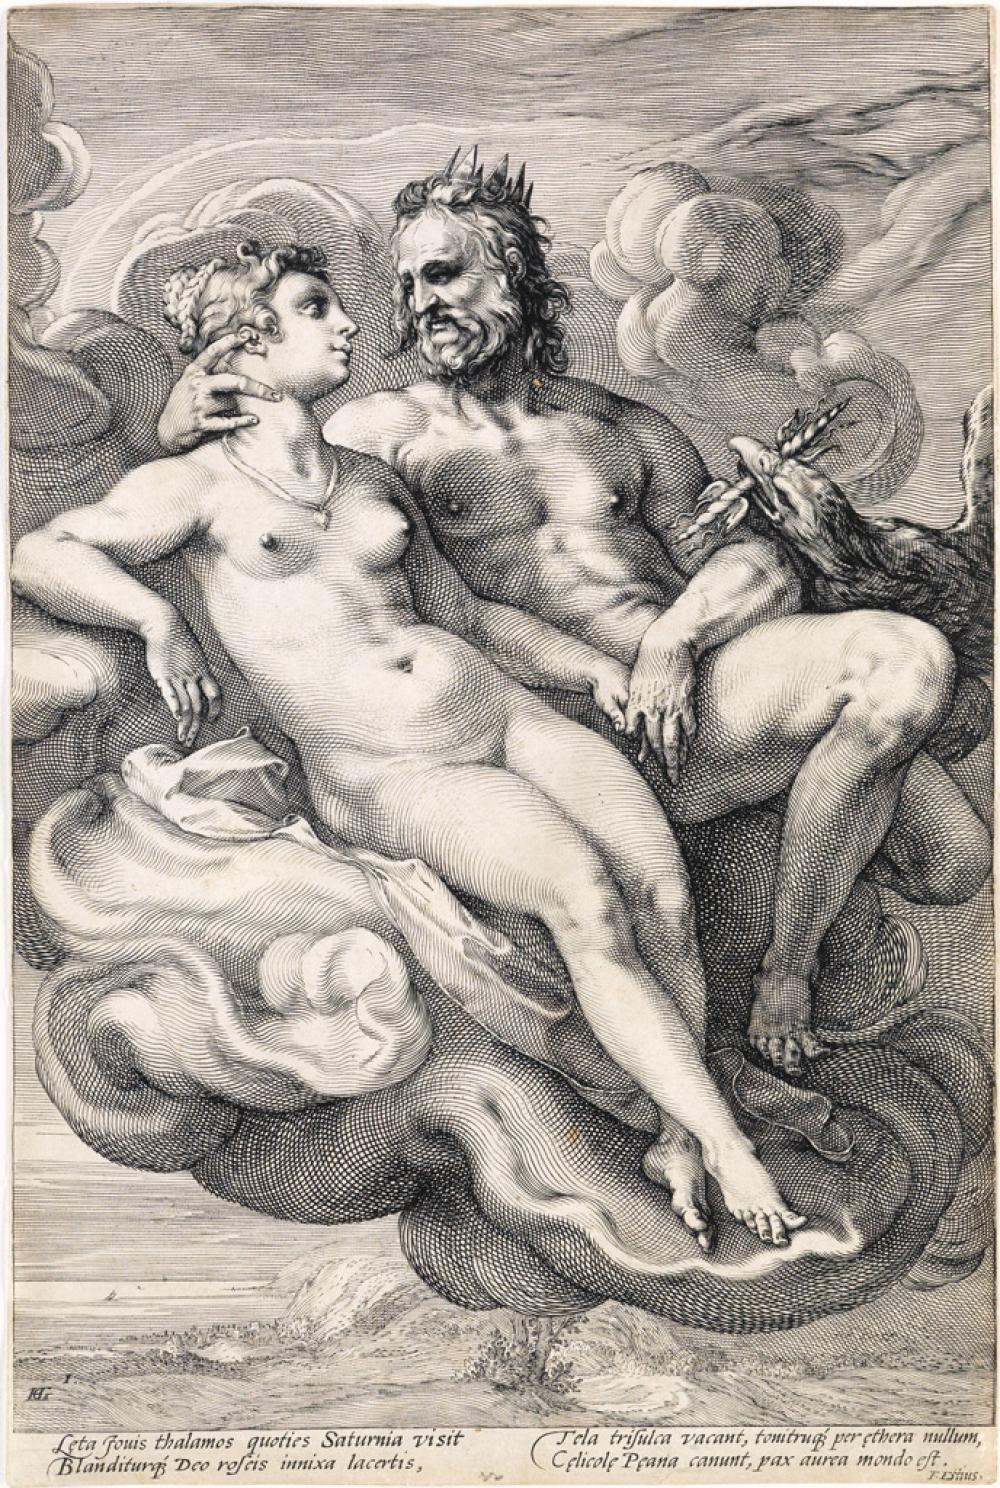 JAN SAENREDAM (after Goltzius) Three Paired Gods and Goddesses